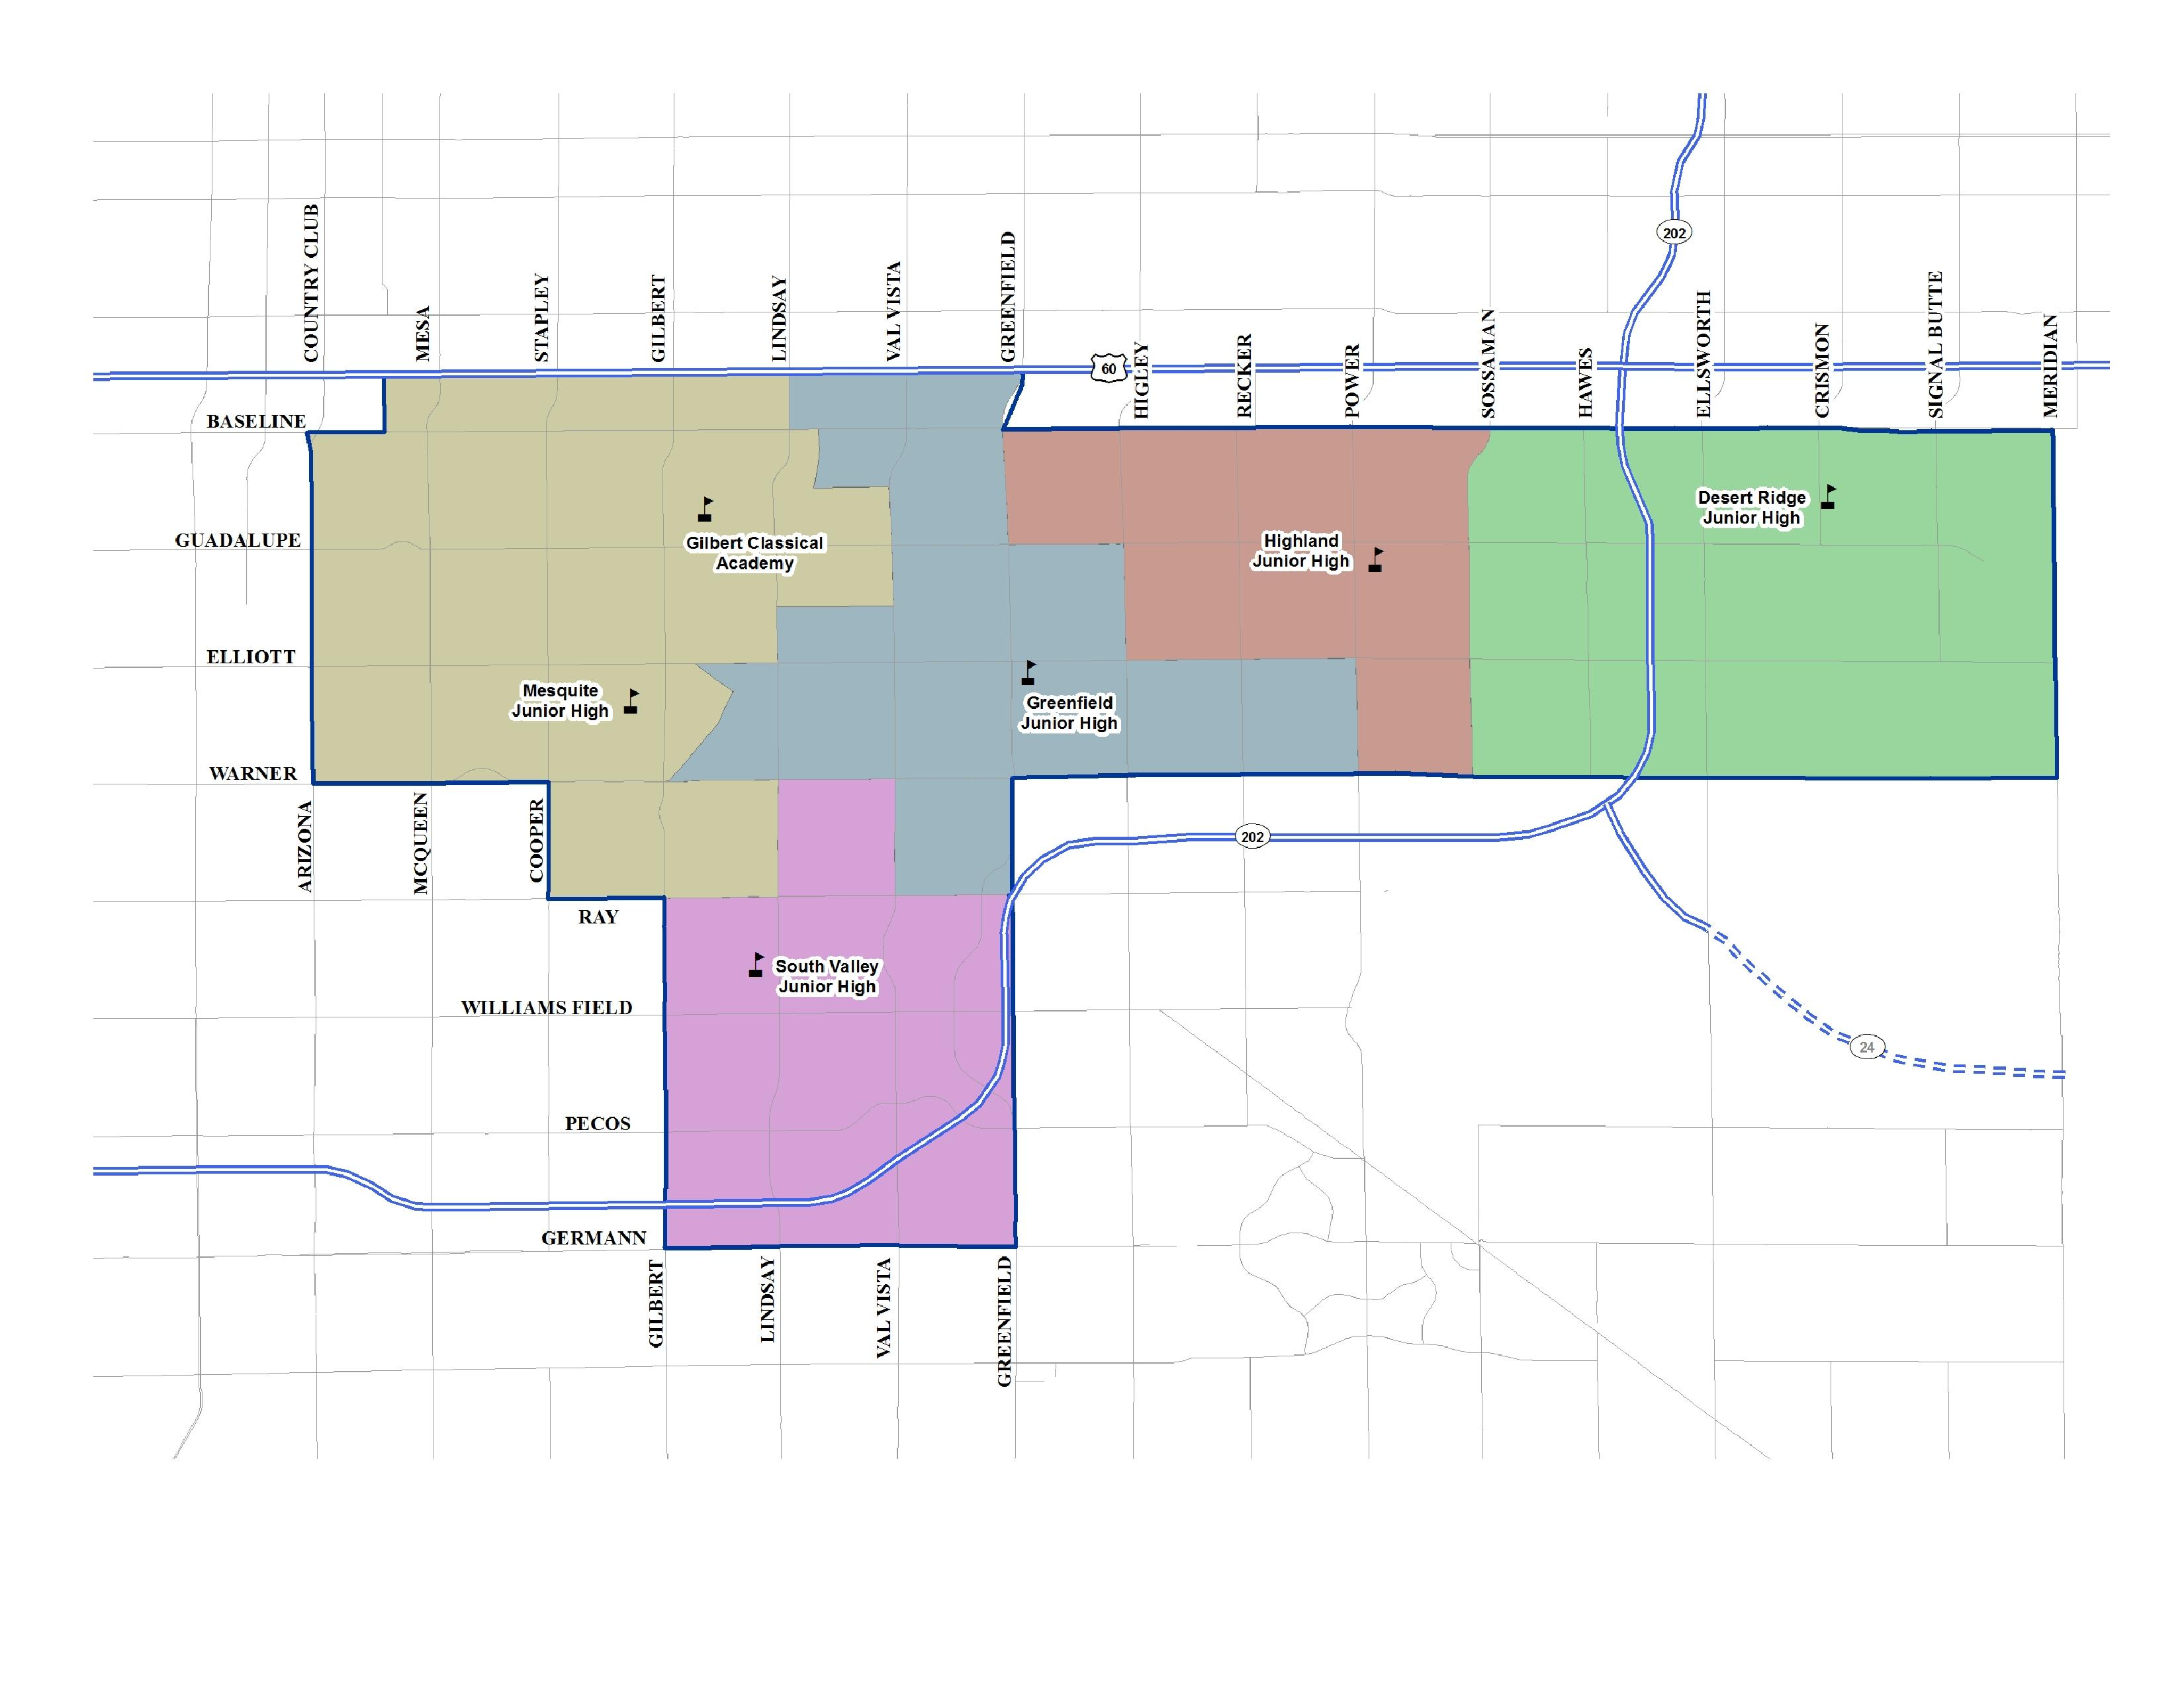 Gilbert AZ Unified District 2019 - 2020 ... on chandler map, highland high school map, sun city map, phoenix communities map, silver bay map, scottsdale map, apache jct map, oracle map, east mesa map, san tan map, marana map, wickenburg map, phoenix metro map, glendale peoria map, avondale map, beckley map, tolleson map, baudette map, tempe mesa map,